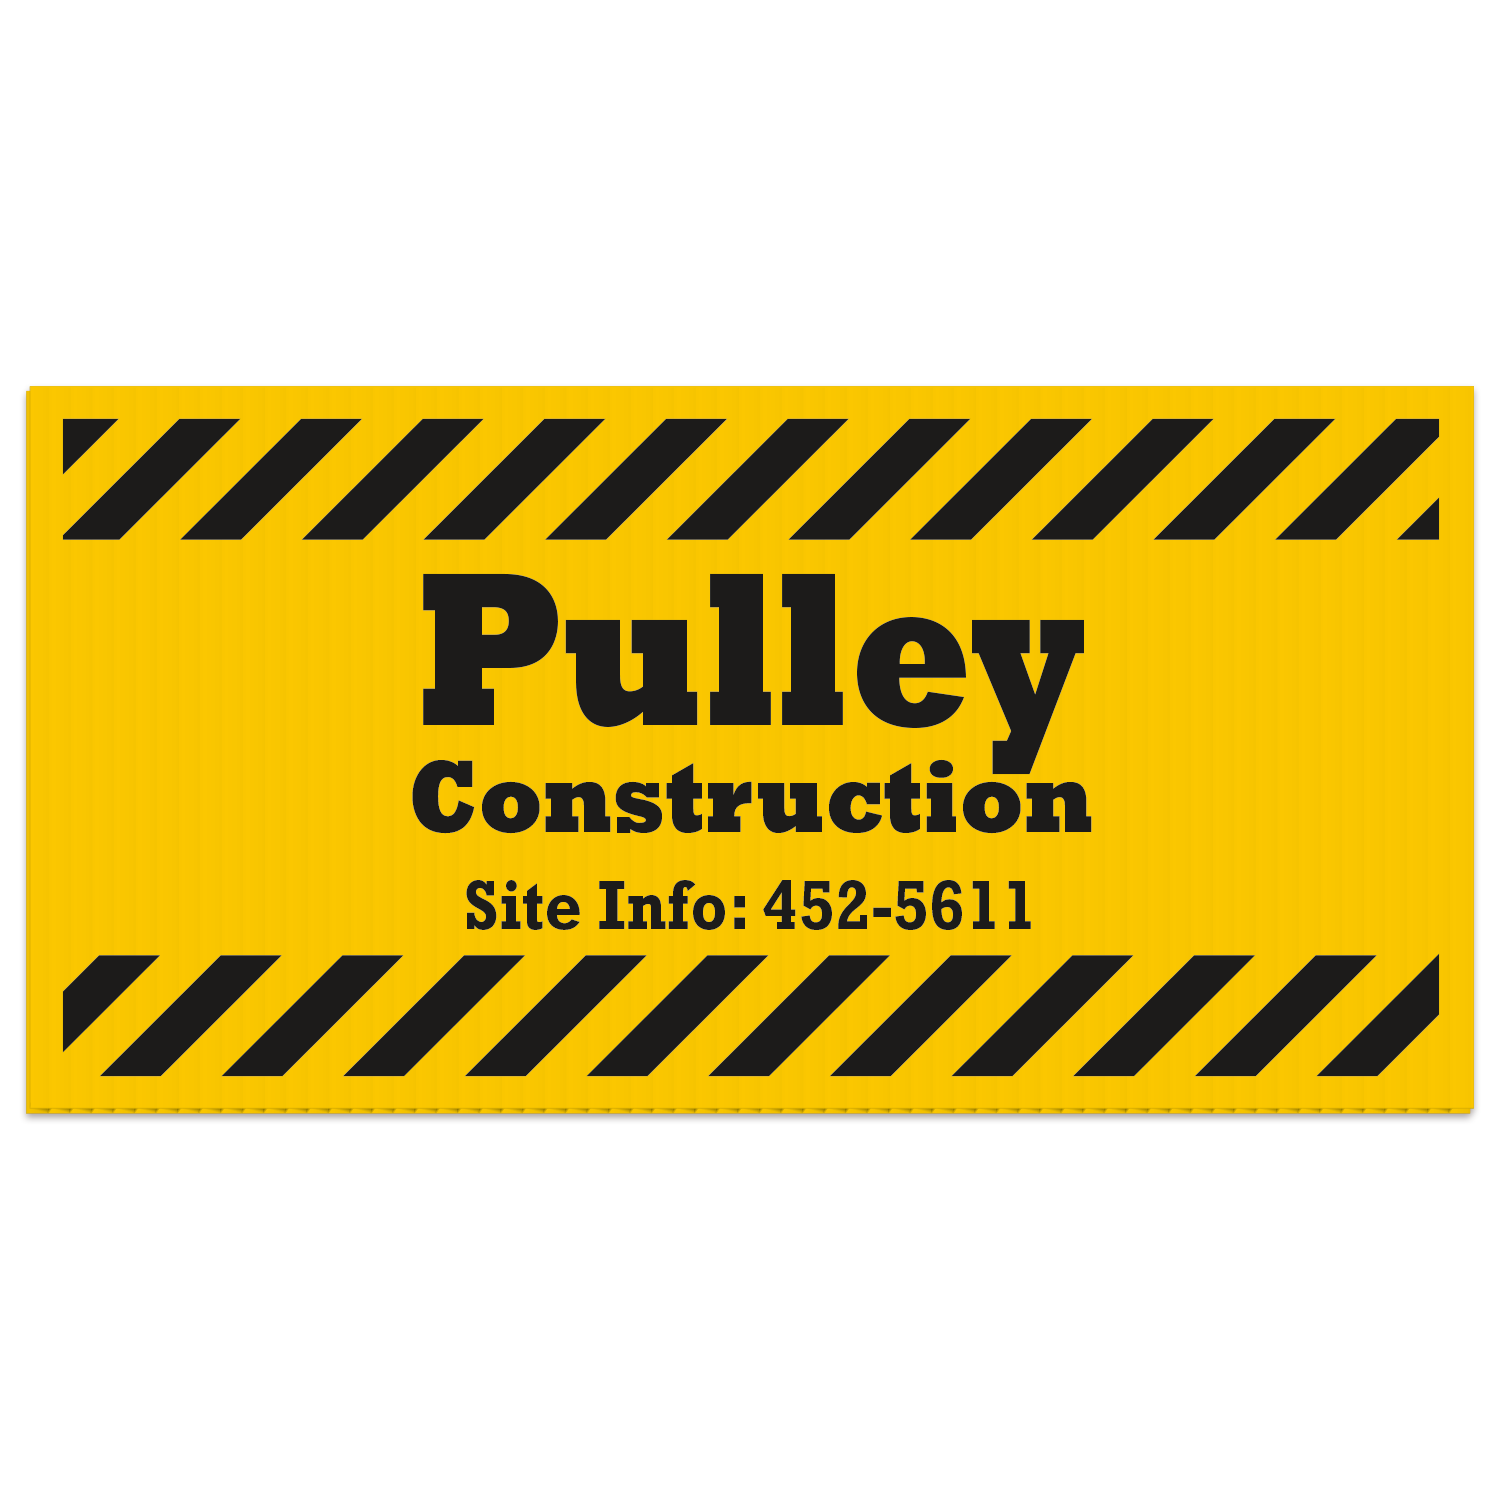 https://www.sswprinting.com/images/products_gallery_images/18231_Pulley-Construction_hi-res.png